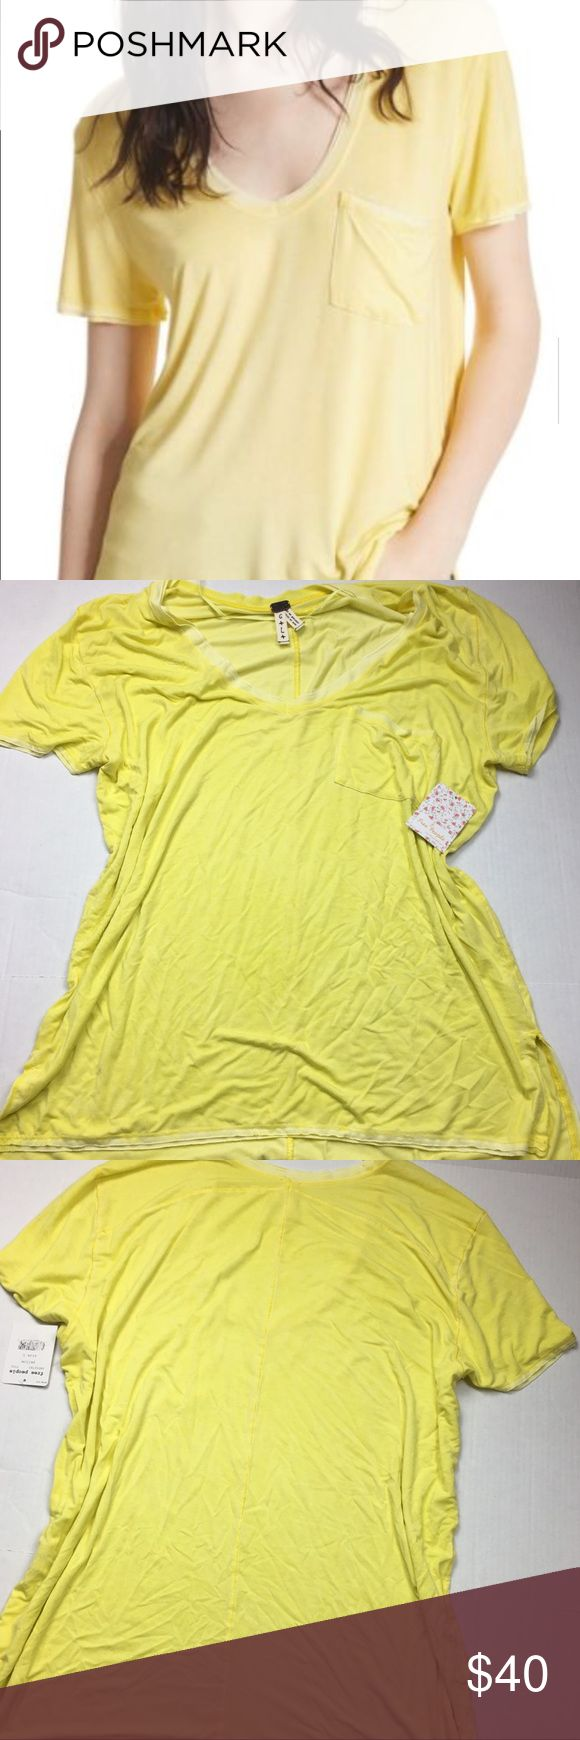 NWT Free People Rising Sun Tee Free People We the Free Rising Sun Tee. Size Large. New with tags! Hazy yellow Slouchy Tee with front pocket and exposed seams. Scoop neck. Short sleeves. Rayon/Spandex blend. Very slouchy and oversized. Super soft and the perfect basic for all wardrobes! Free People Tops Tees - Short Sleeve